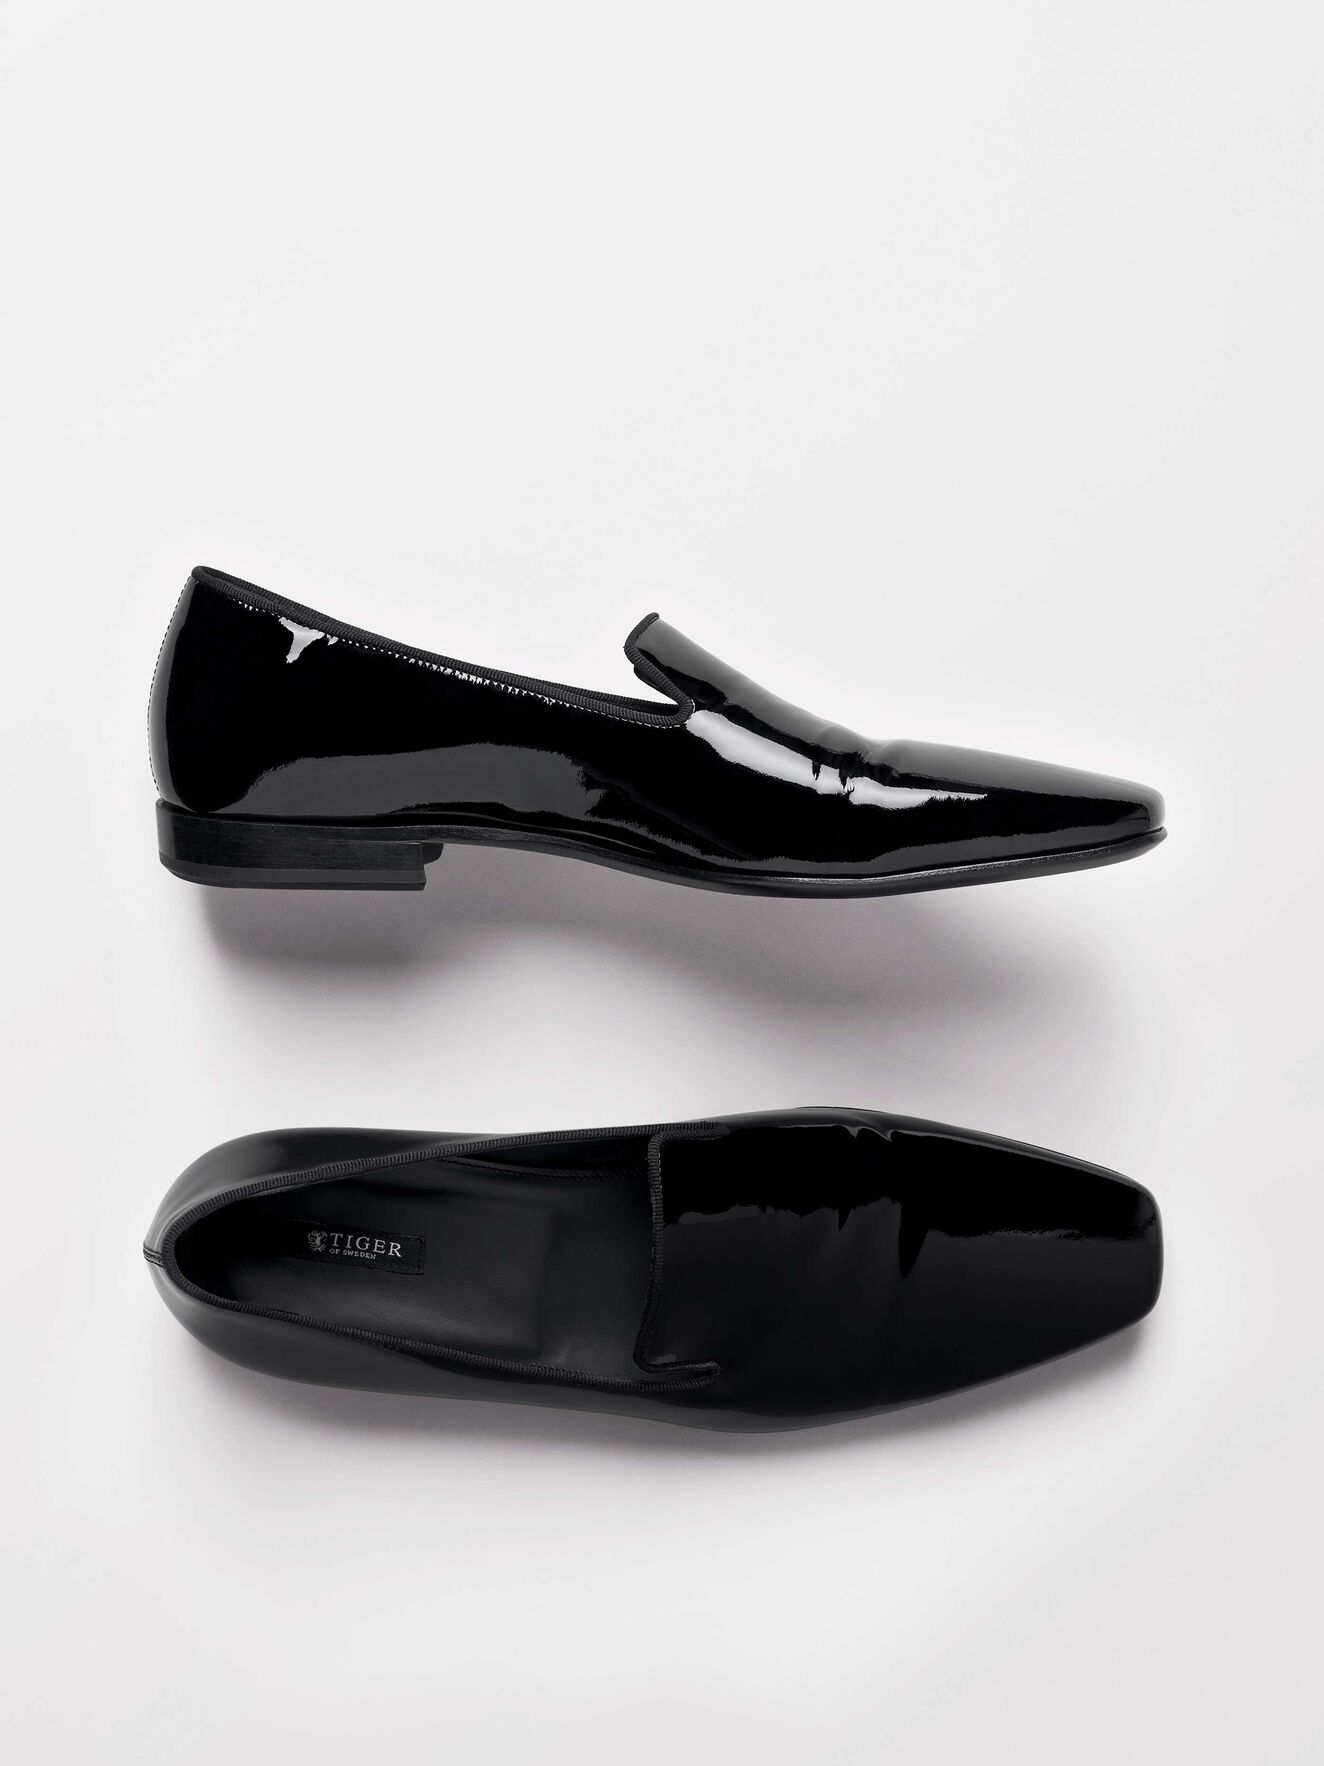 Sartor Loafers in Black from Tiger of Sweden